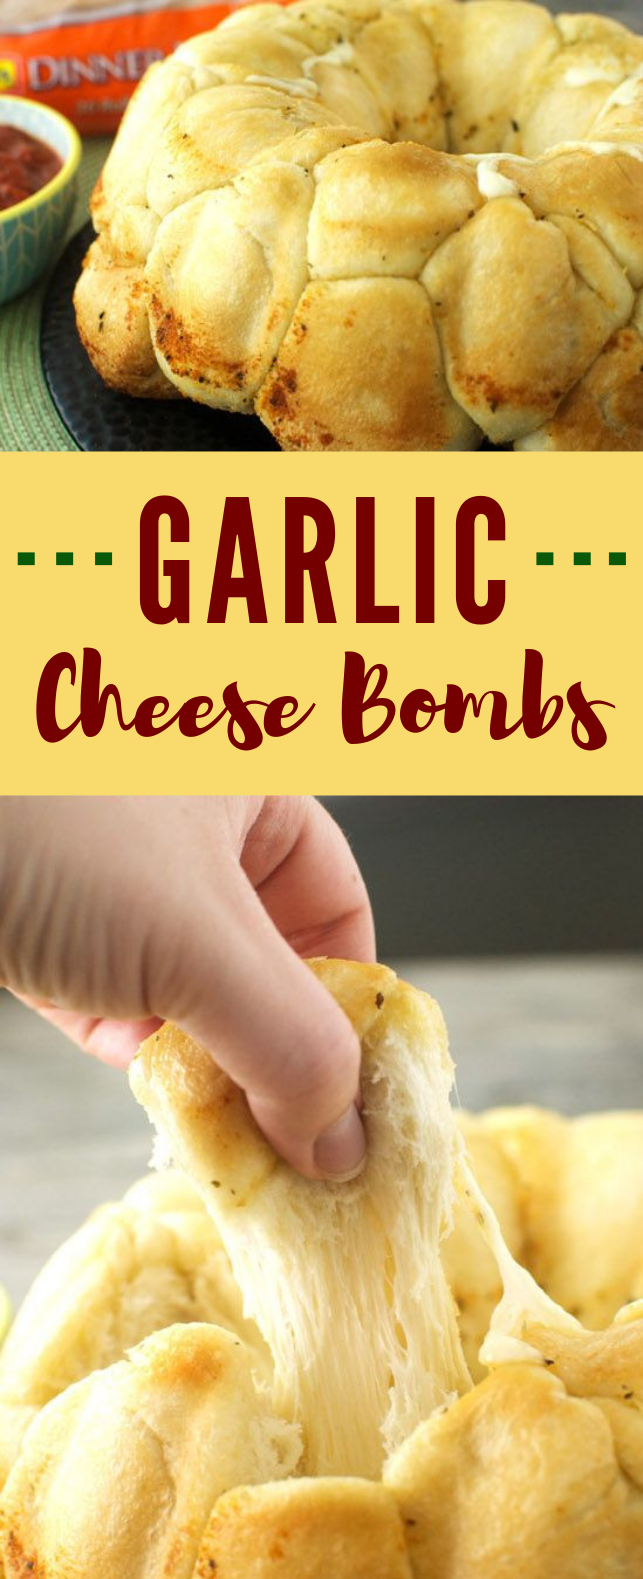 GARLIC CHEESE BOMBS #Meal #Dinner